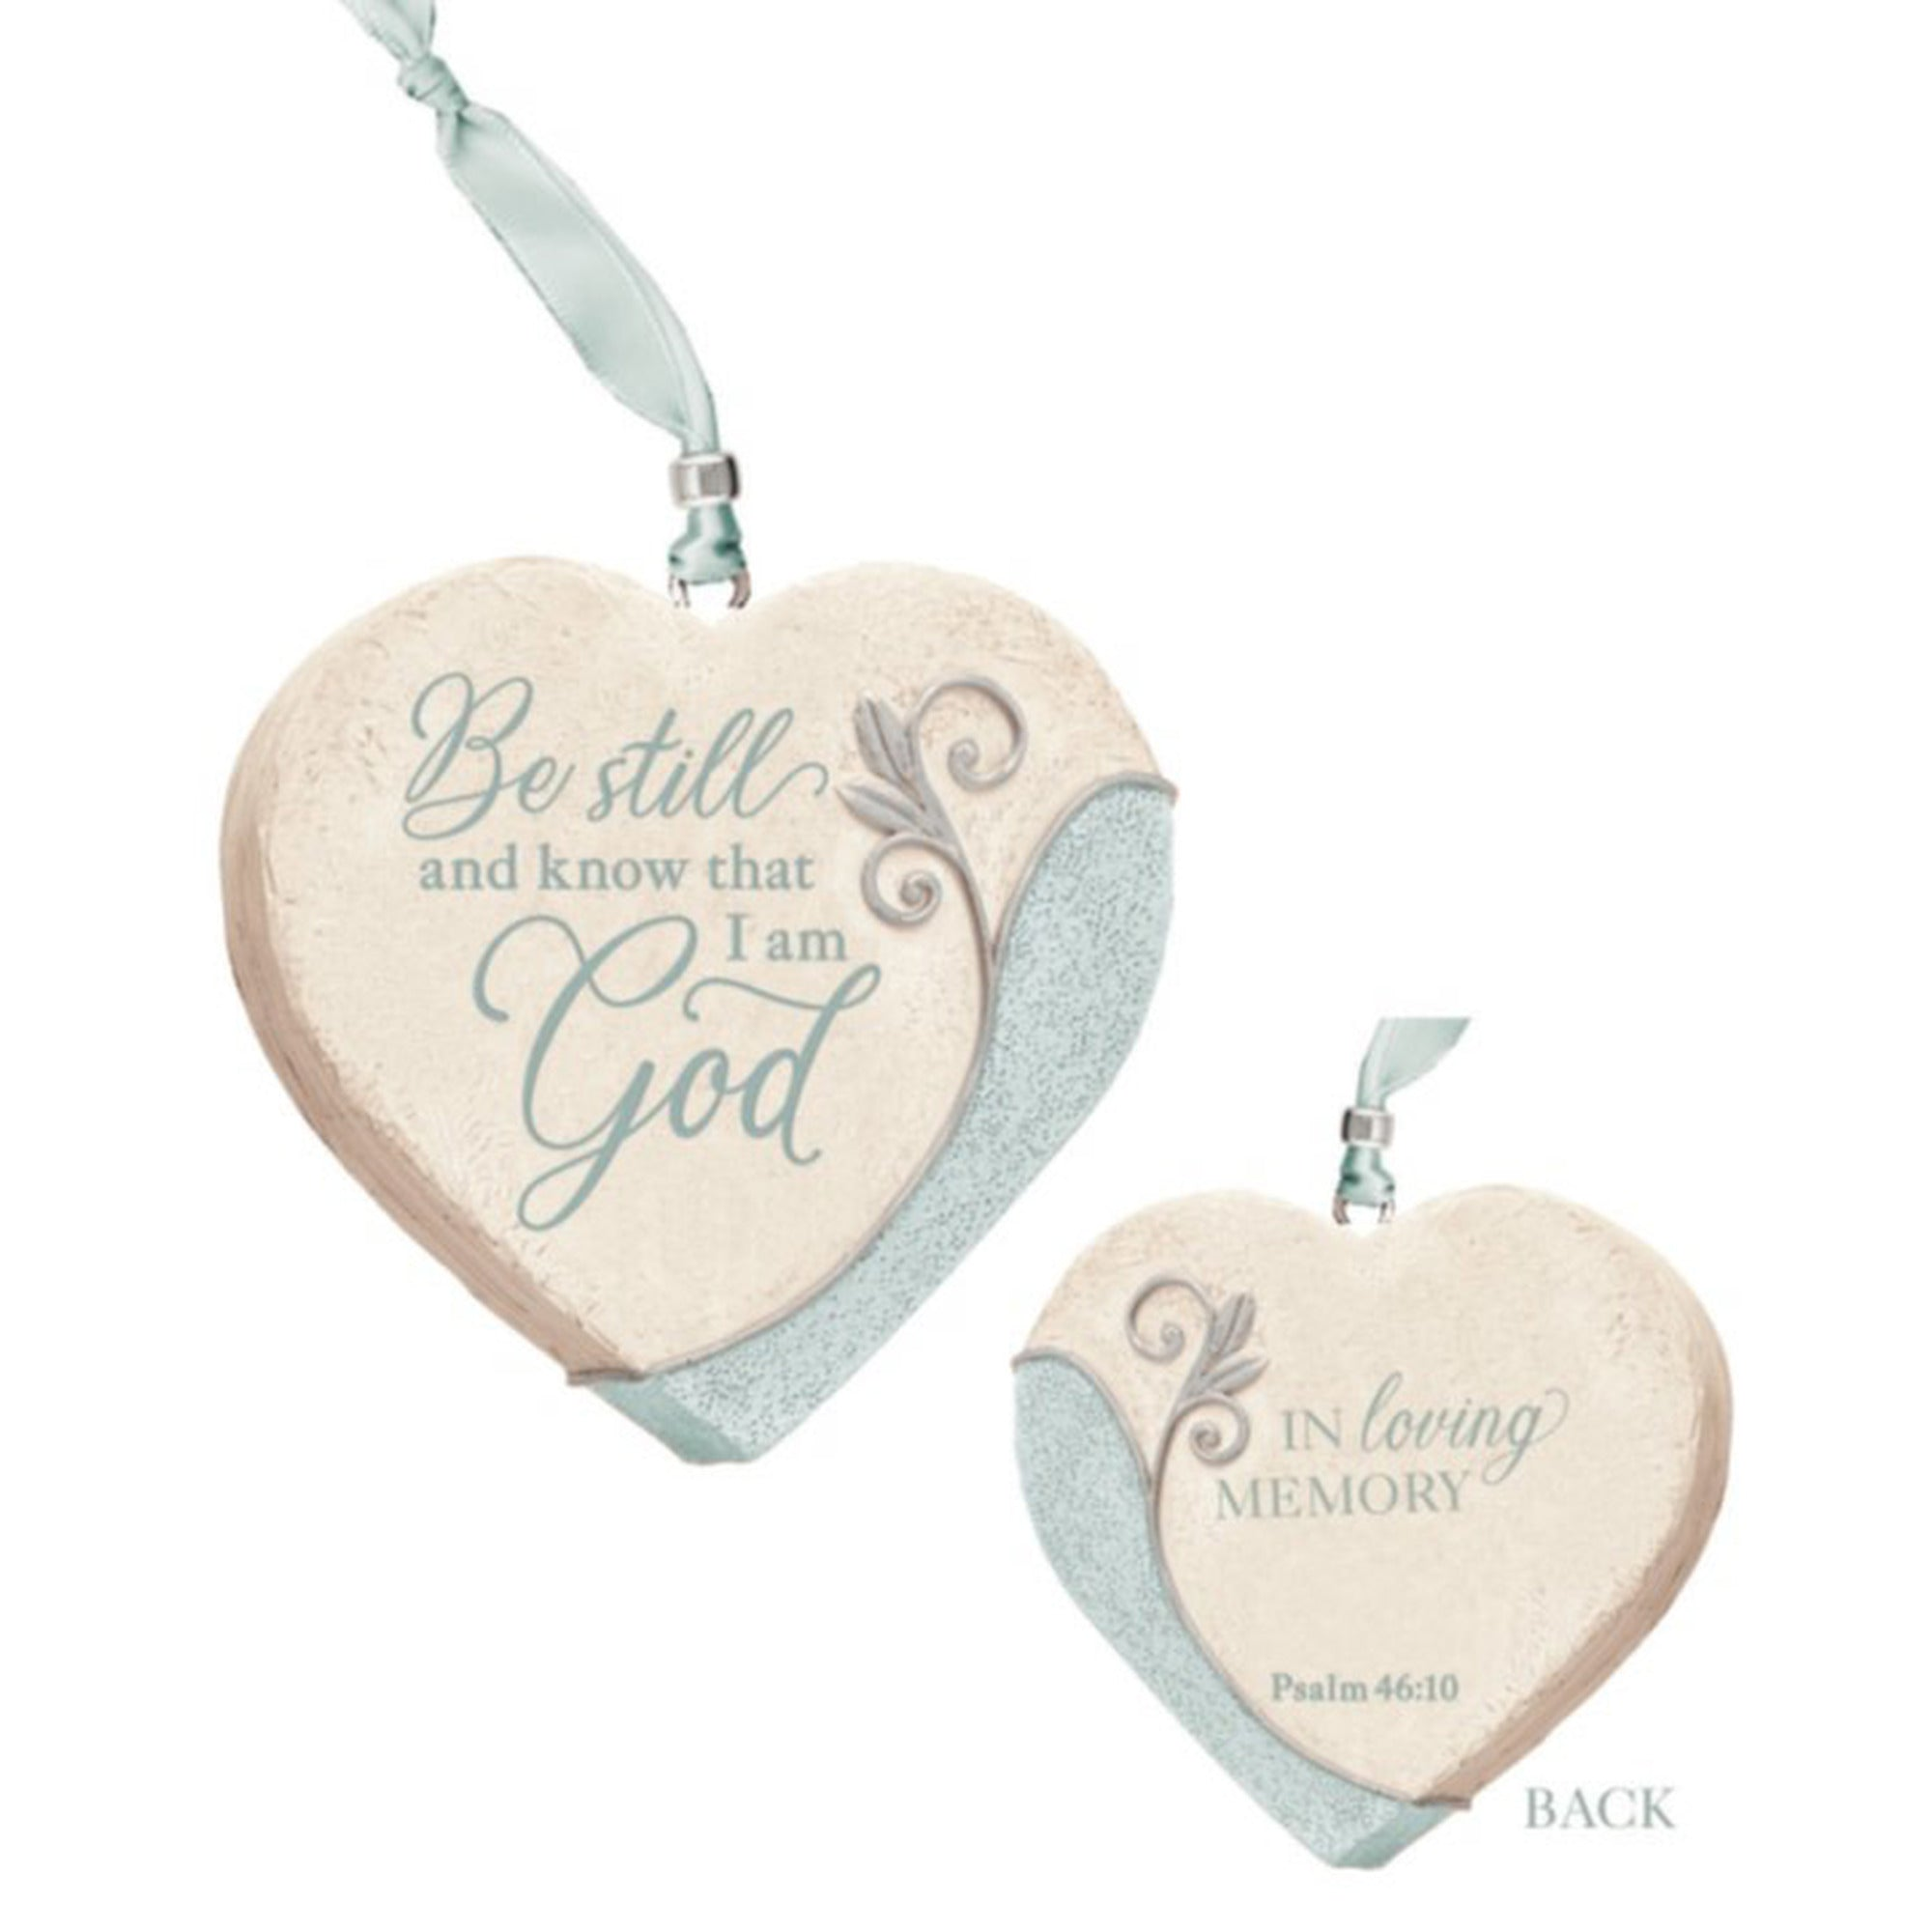 Bereavement Heart Ornament